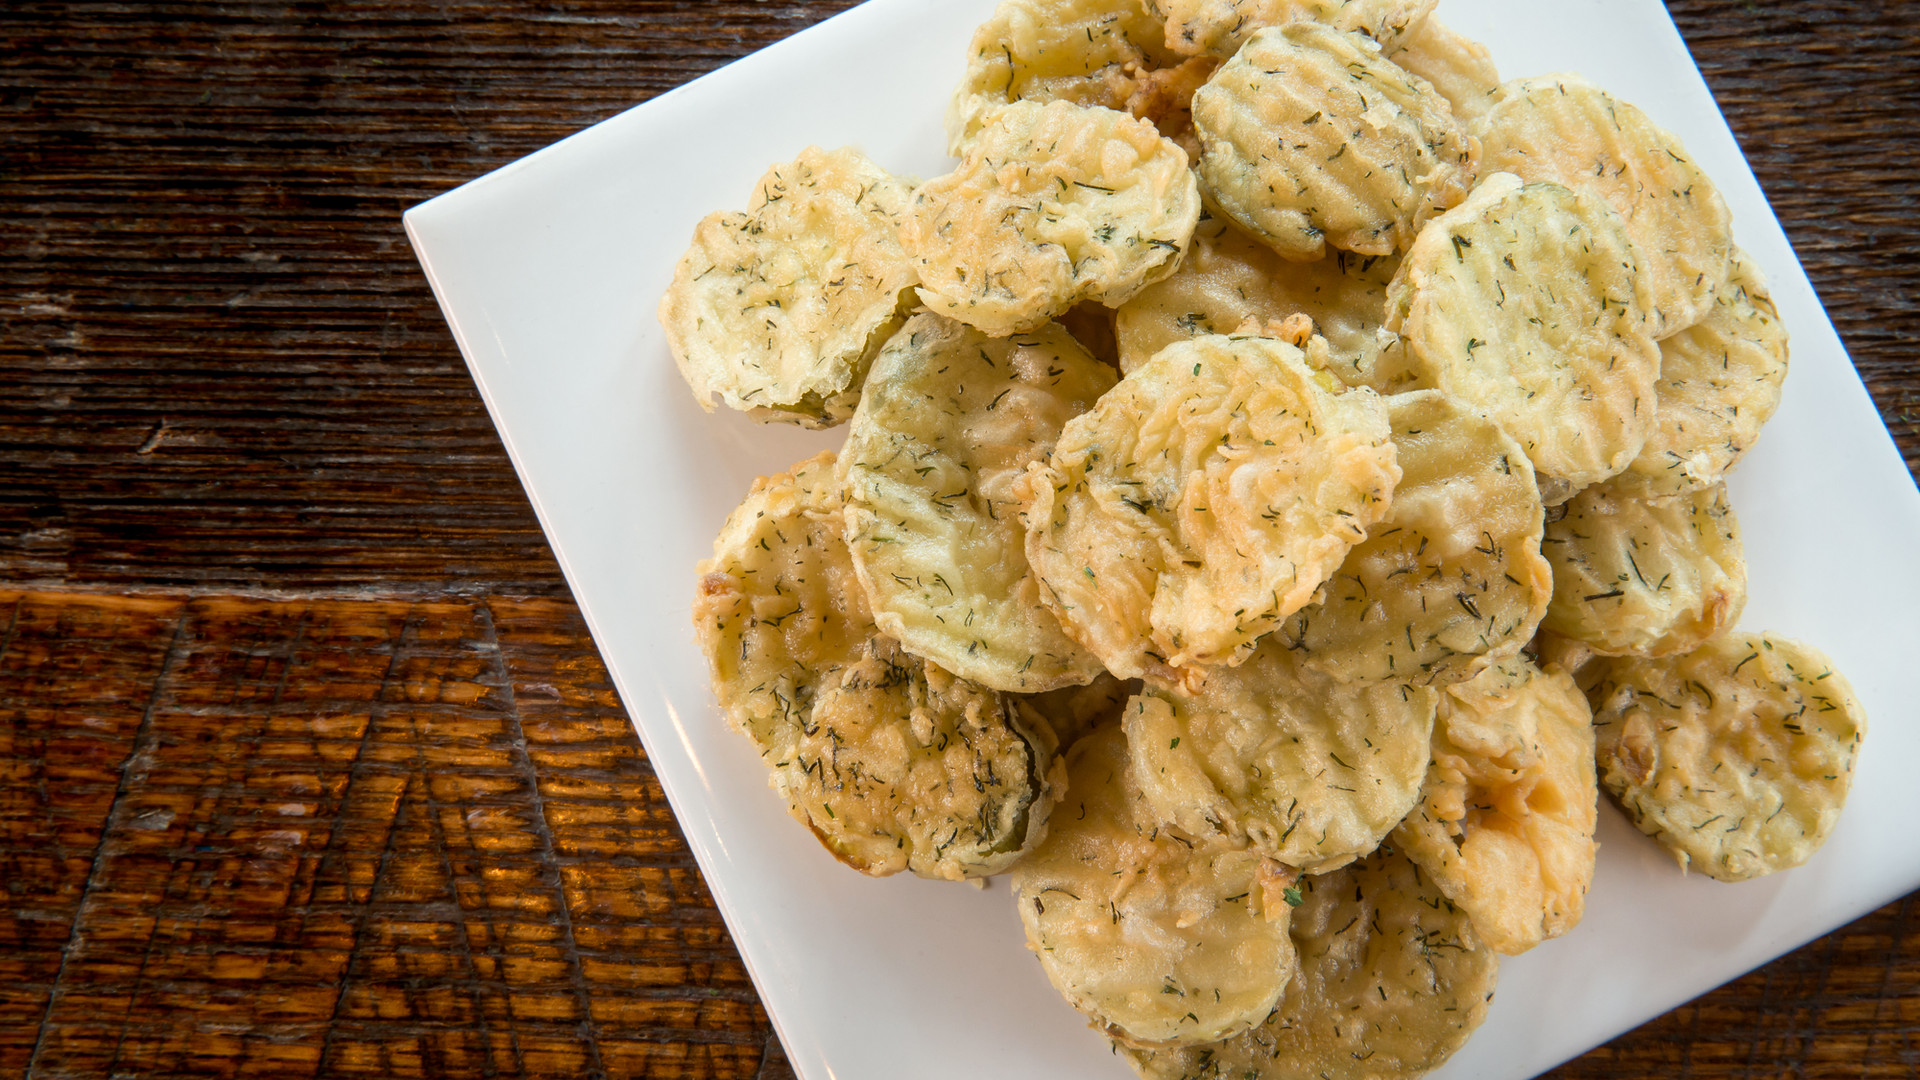 Housemade Fried Pickles